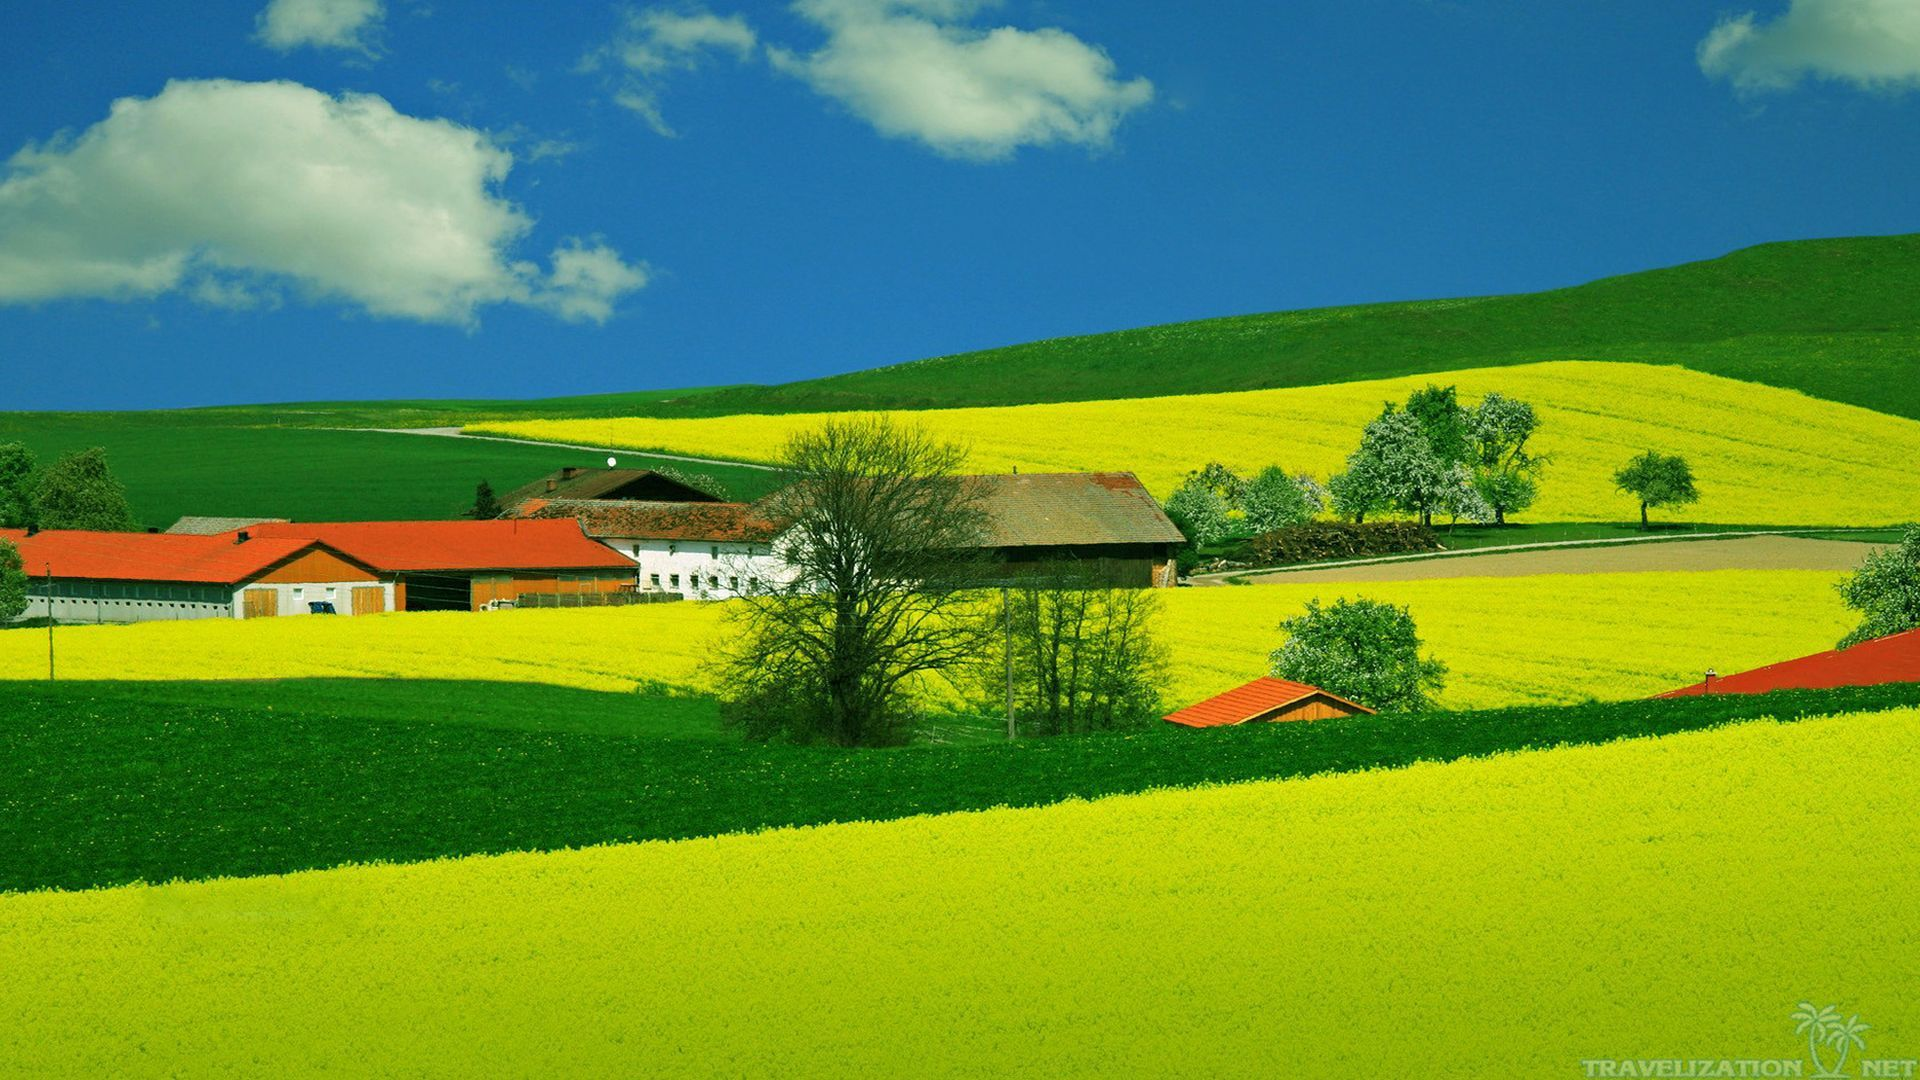 Summer Nature Wallpaper Widescreen 2 Hd Wallpapers Lzamgs With